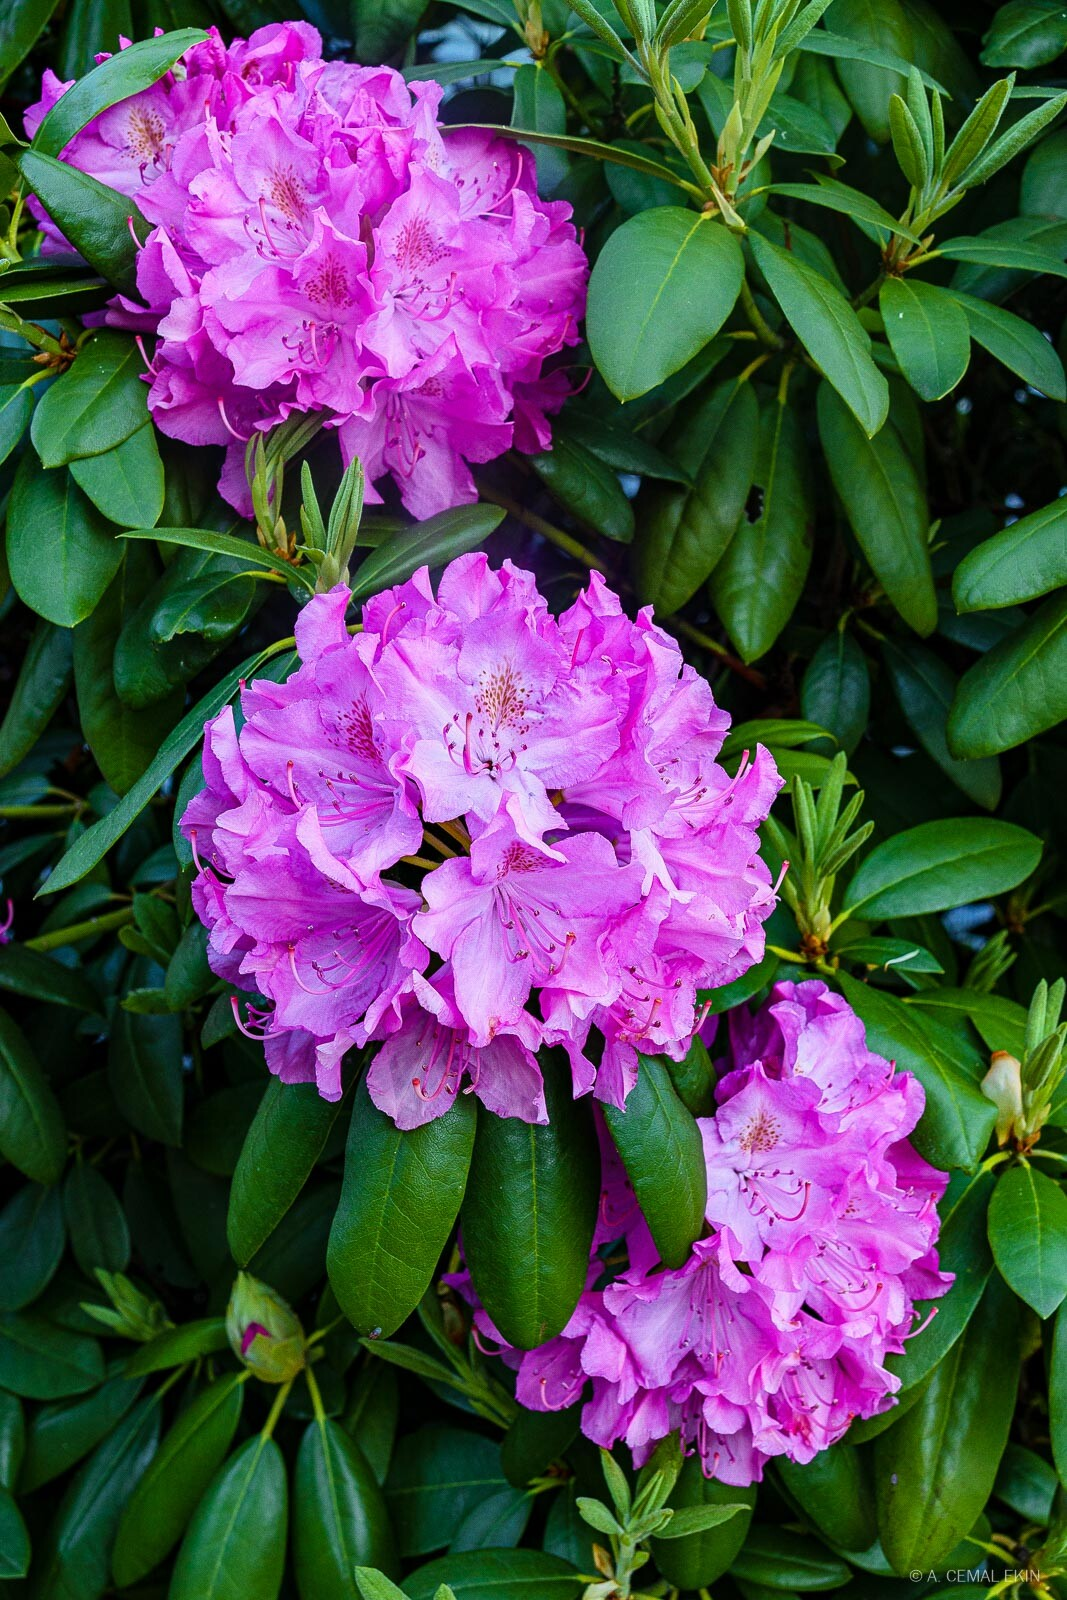 Rhododendron blossoms symbolizing a better future